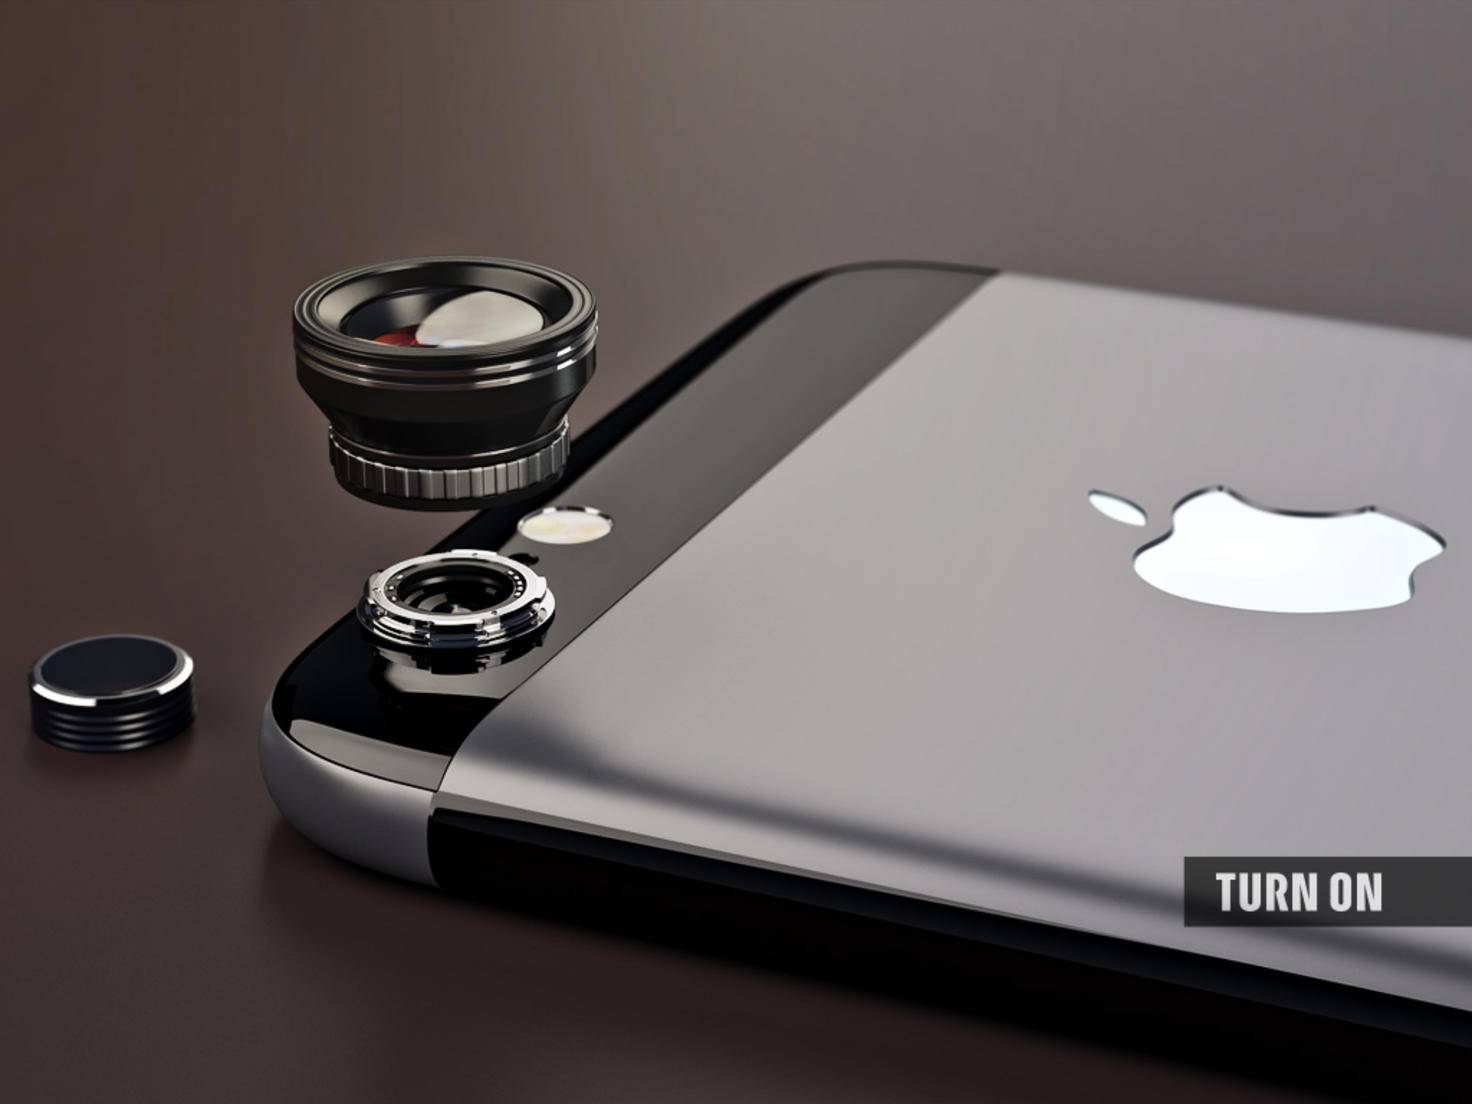 For more photographic freedom the iPhone's original lens would be detachable.